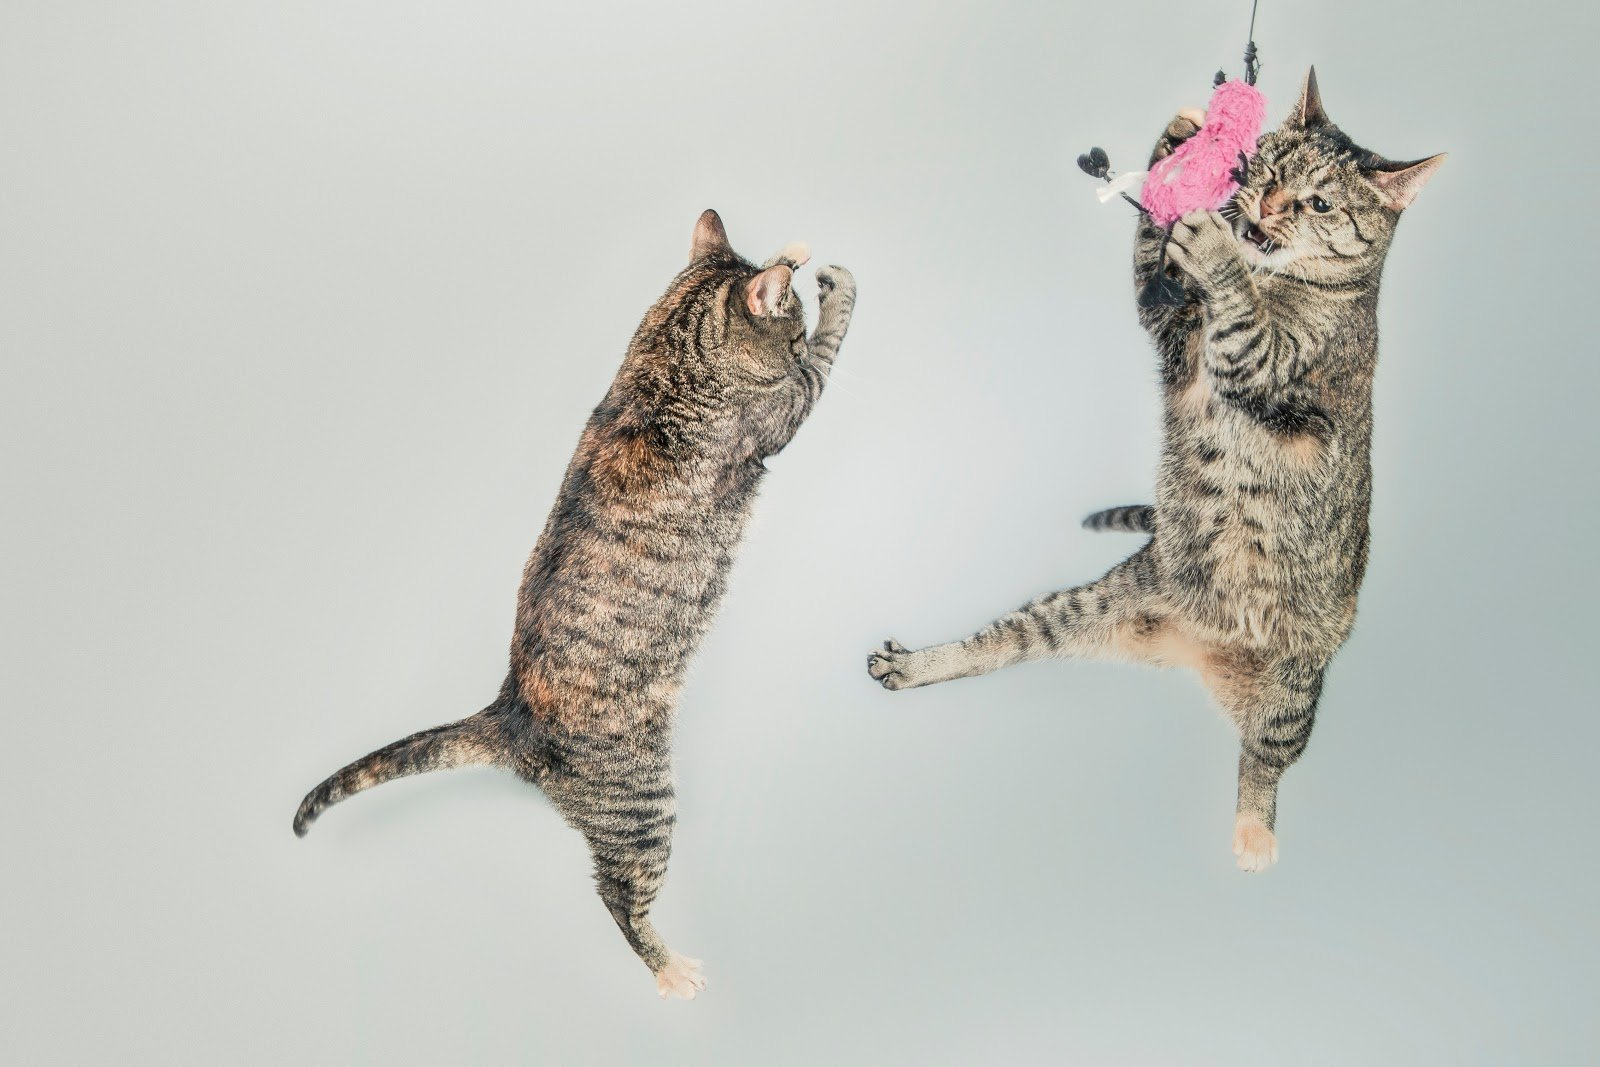 How High Can Cats Jump and Fall Safely?